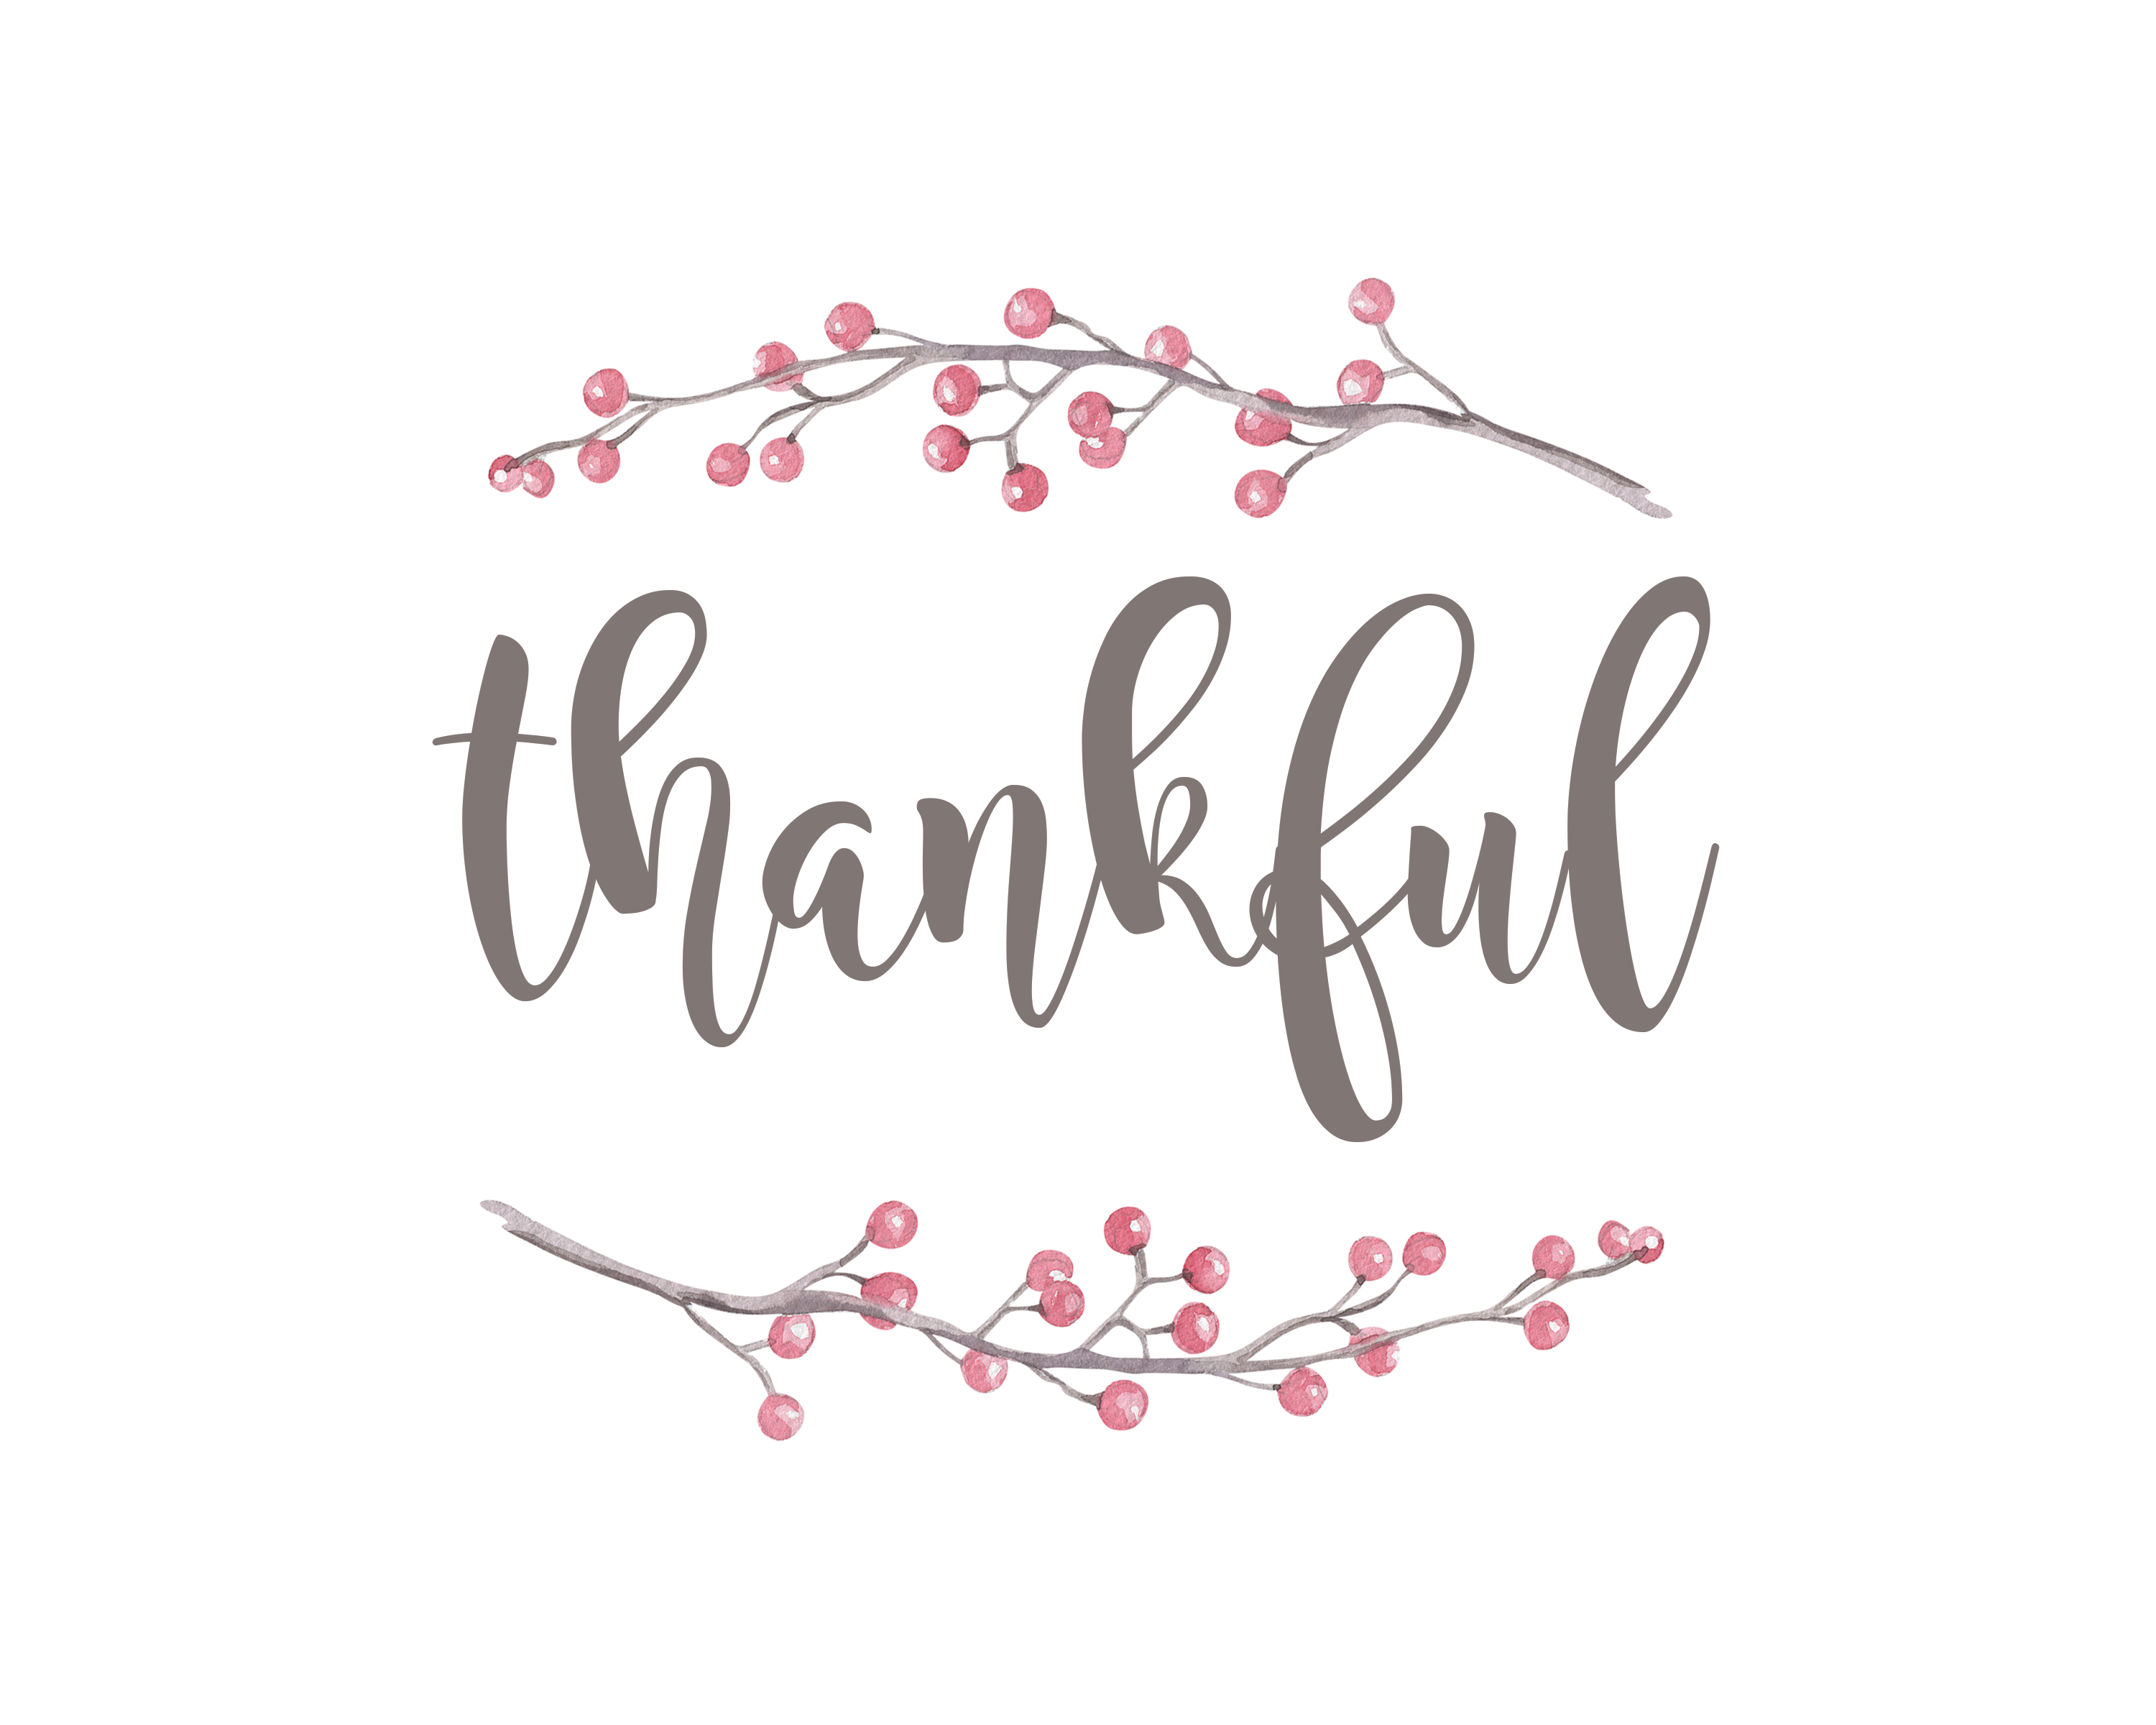 Grateful - vs - Thankful - One Road at a Time